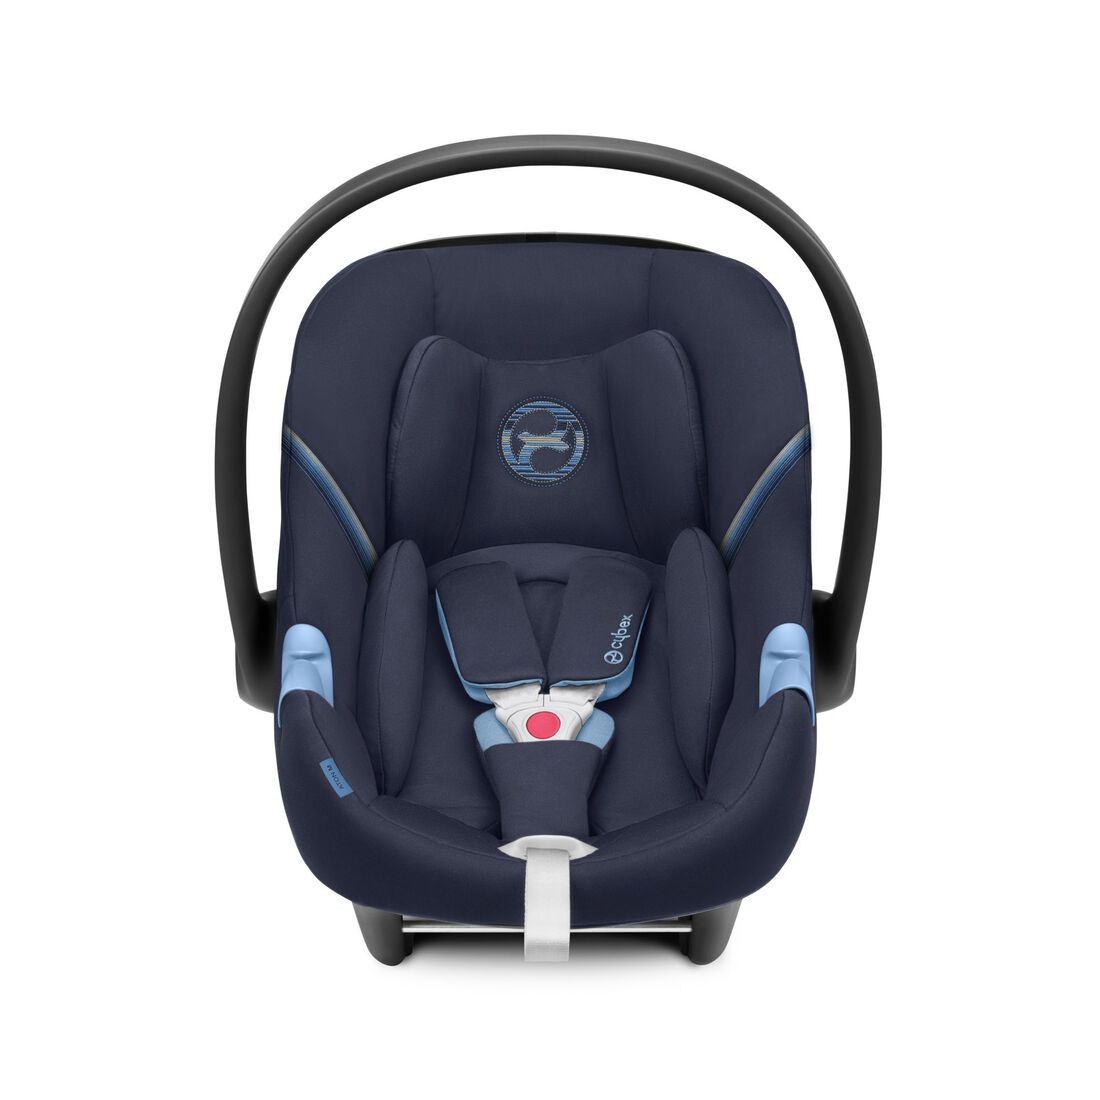 CYBEX Aton M i-Size - Navy Blue in Navy Blue large image number 3